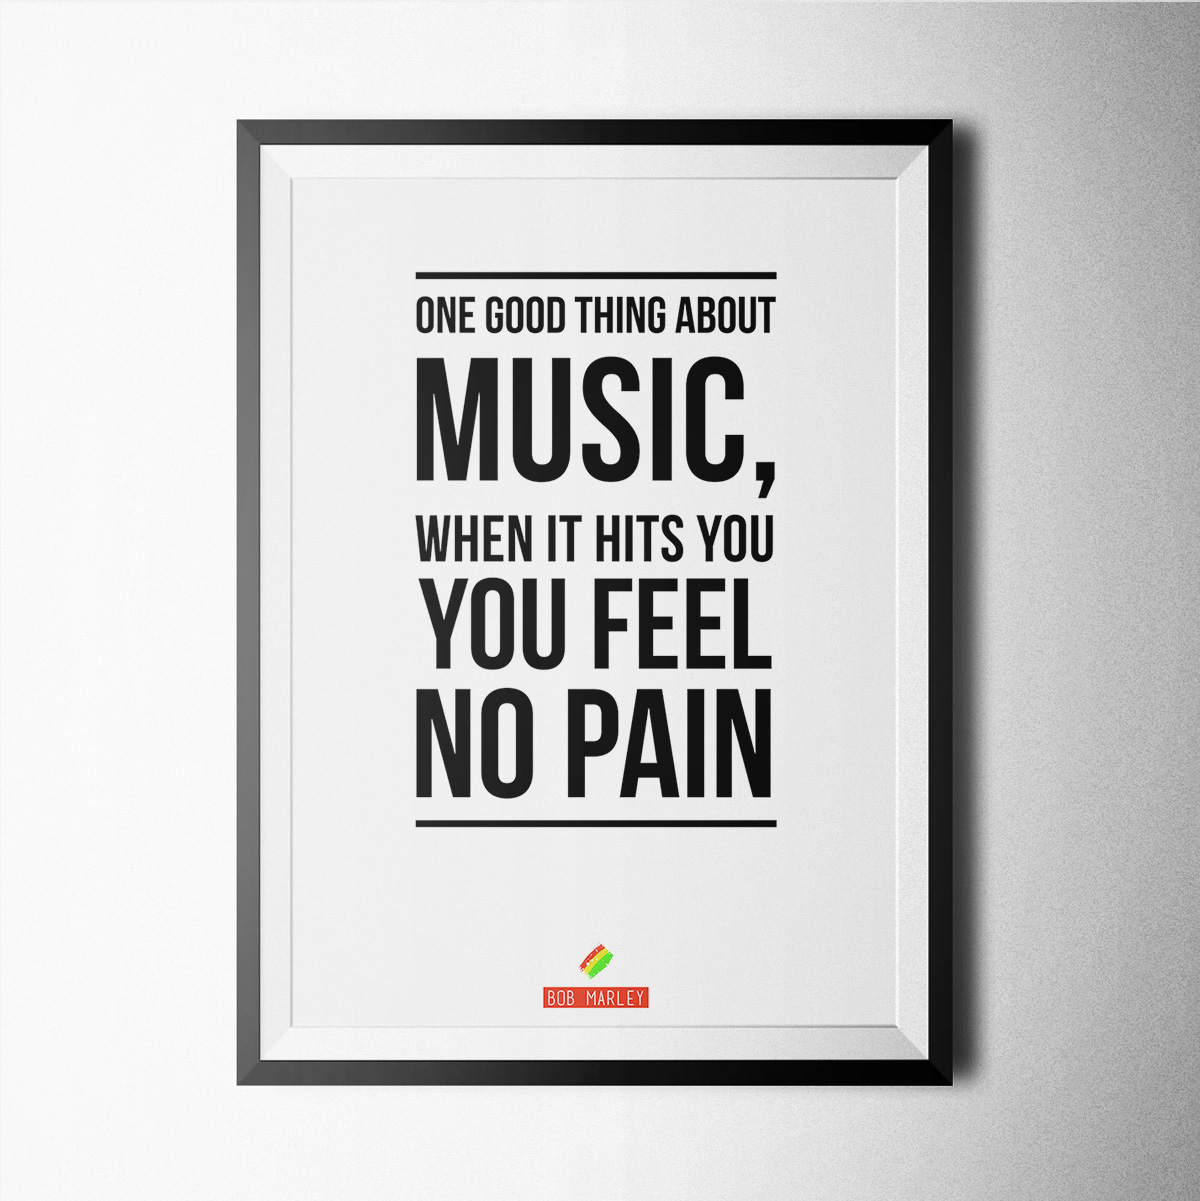 Music bob marley poster print wallart minimal black and white